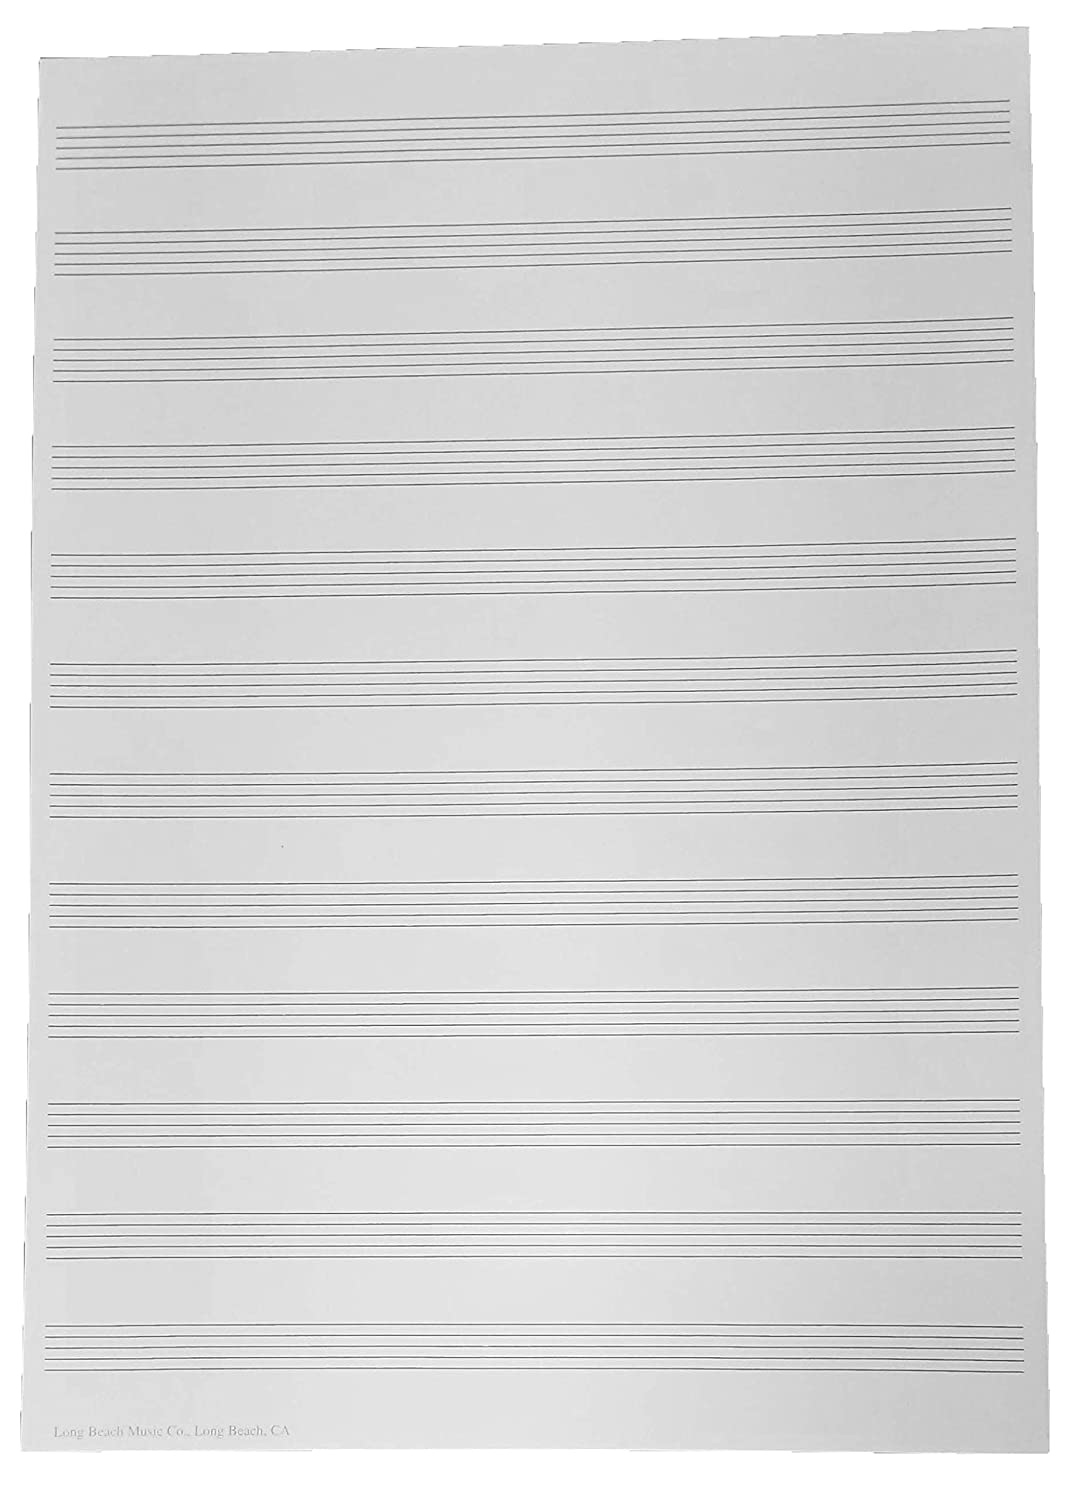 Manuscript Paper 12 Staff for Sheet Music Composition, Song Writing, Piano Long Beach Music